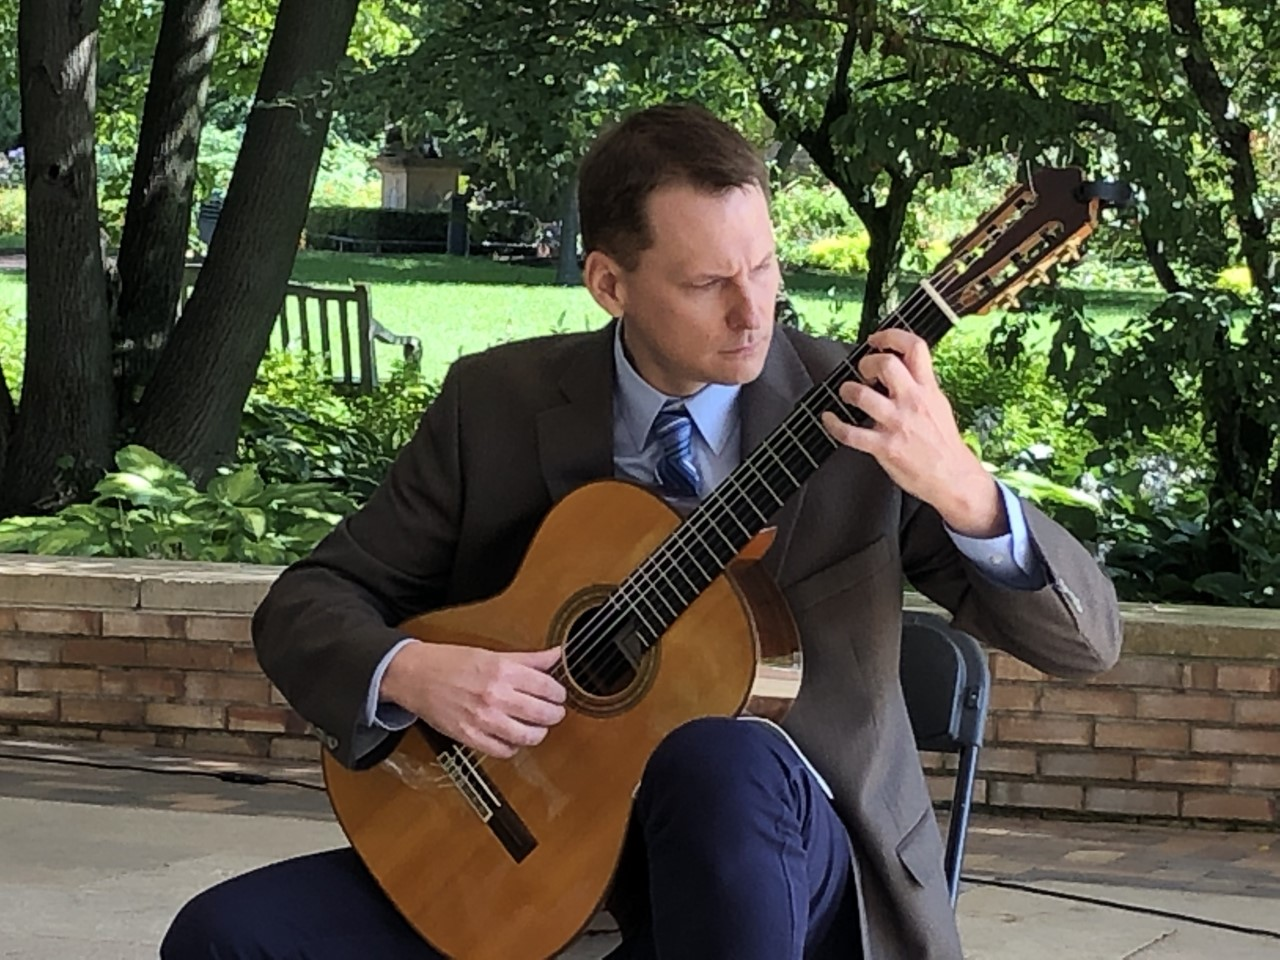 Recital at Chicago Botanic Garden (2019)